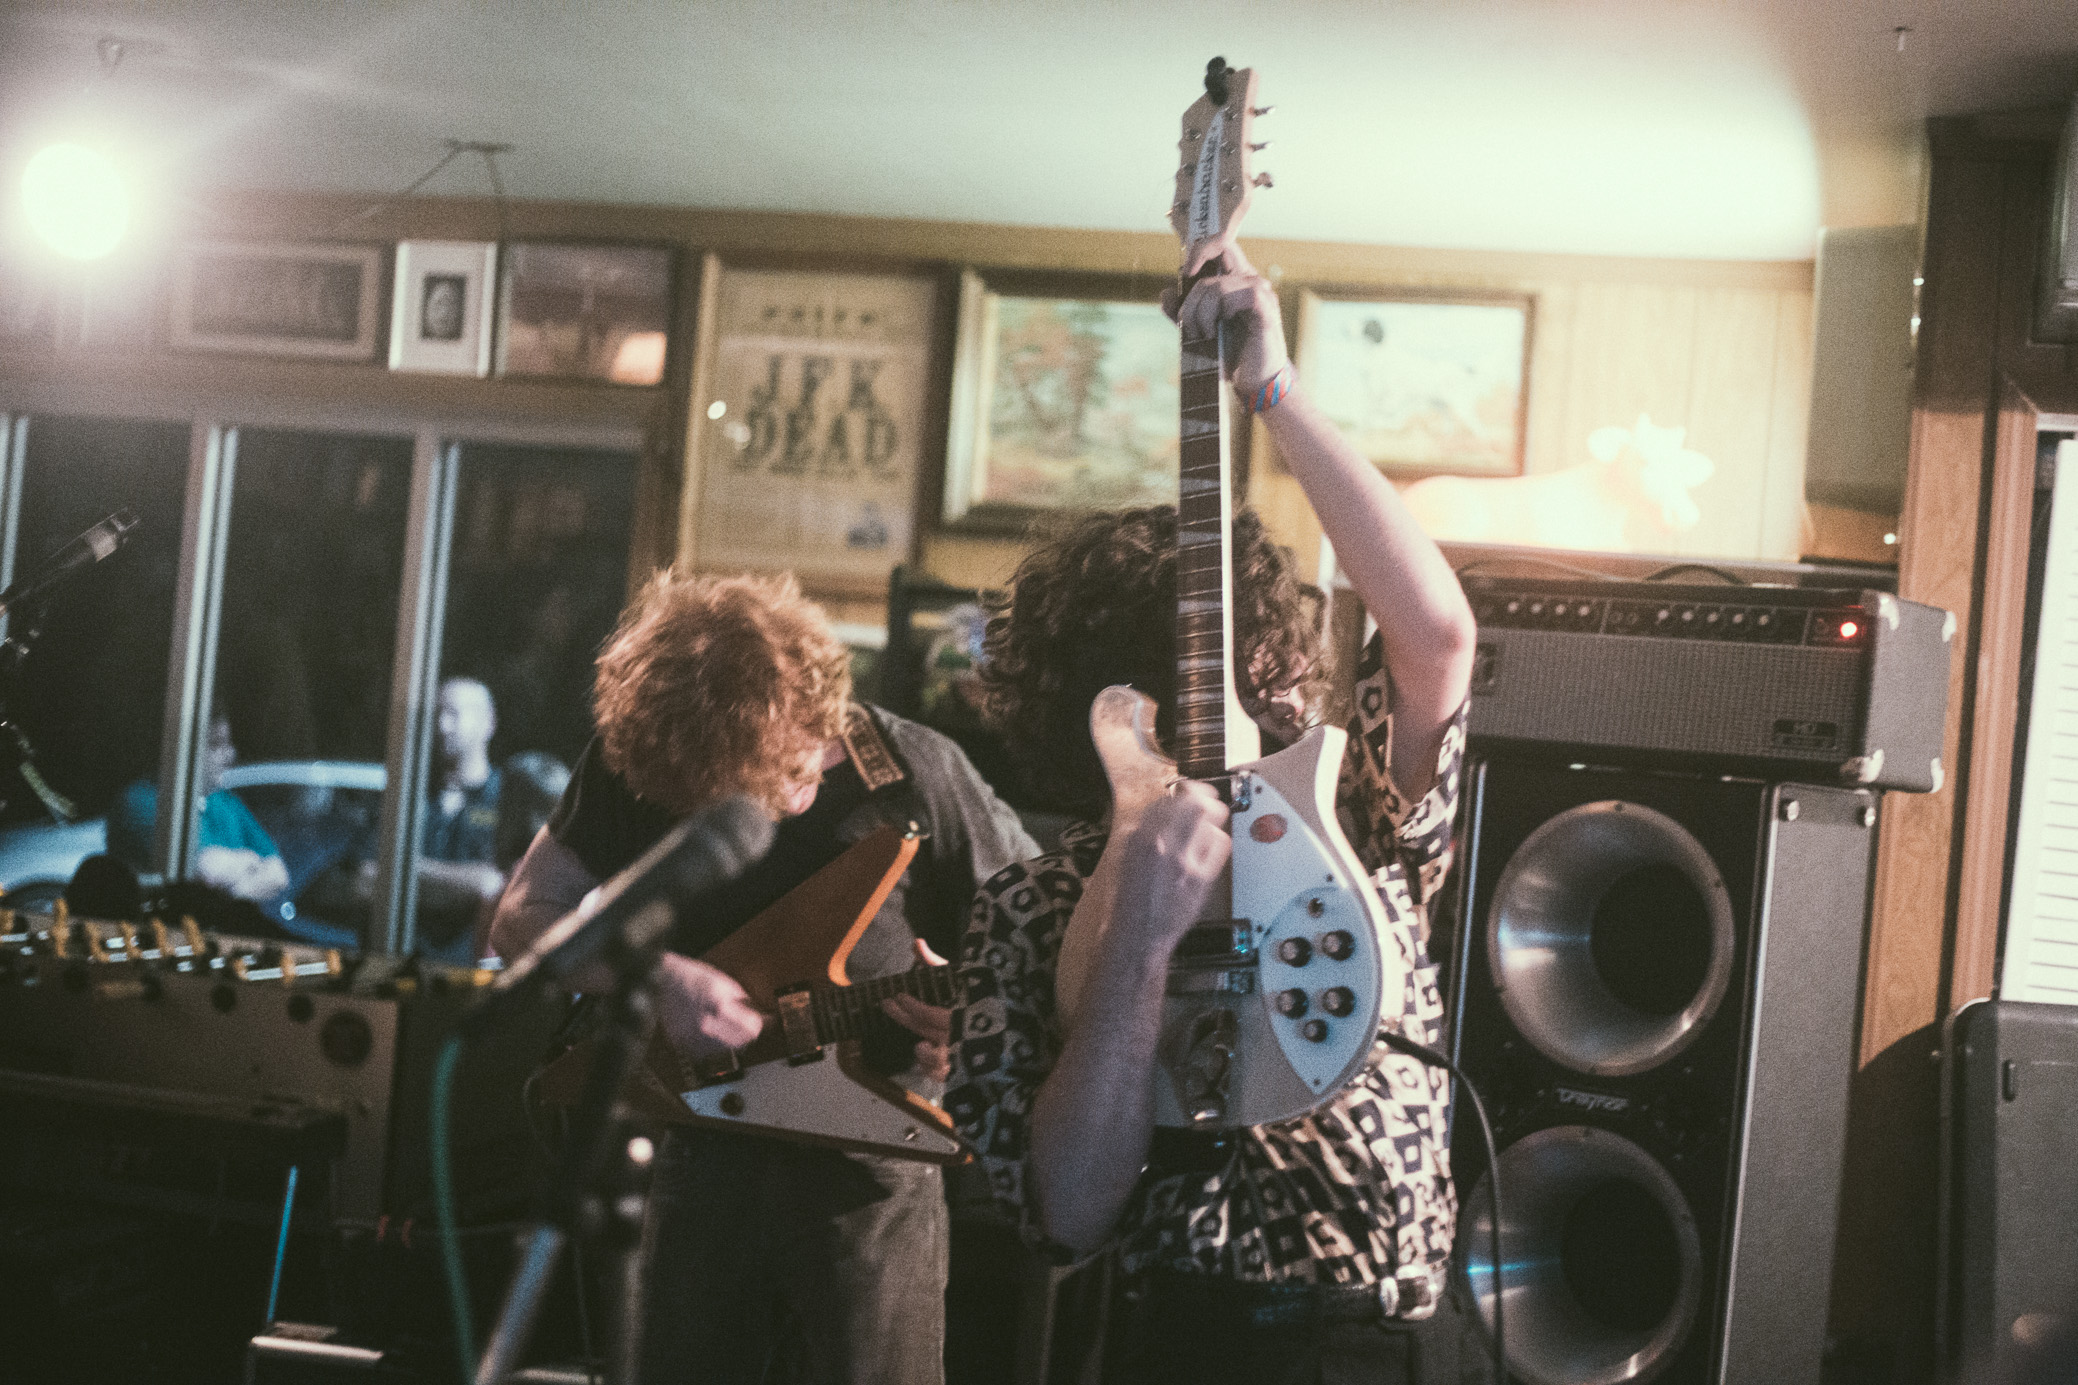 Telefones perform in concert at Mom's Basement in Birmingham, Alabama on May 22nd, 2018. (Photo by David A. Smith/DSmithScenes)